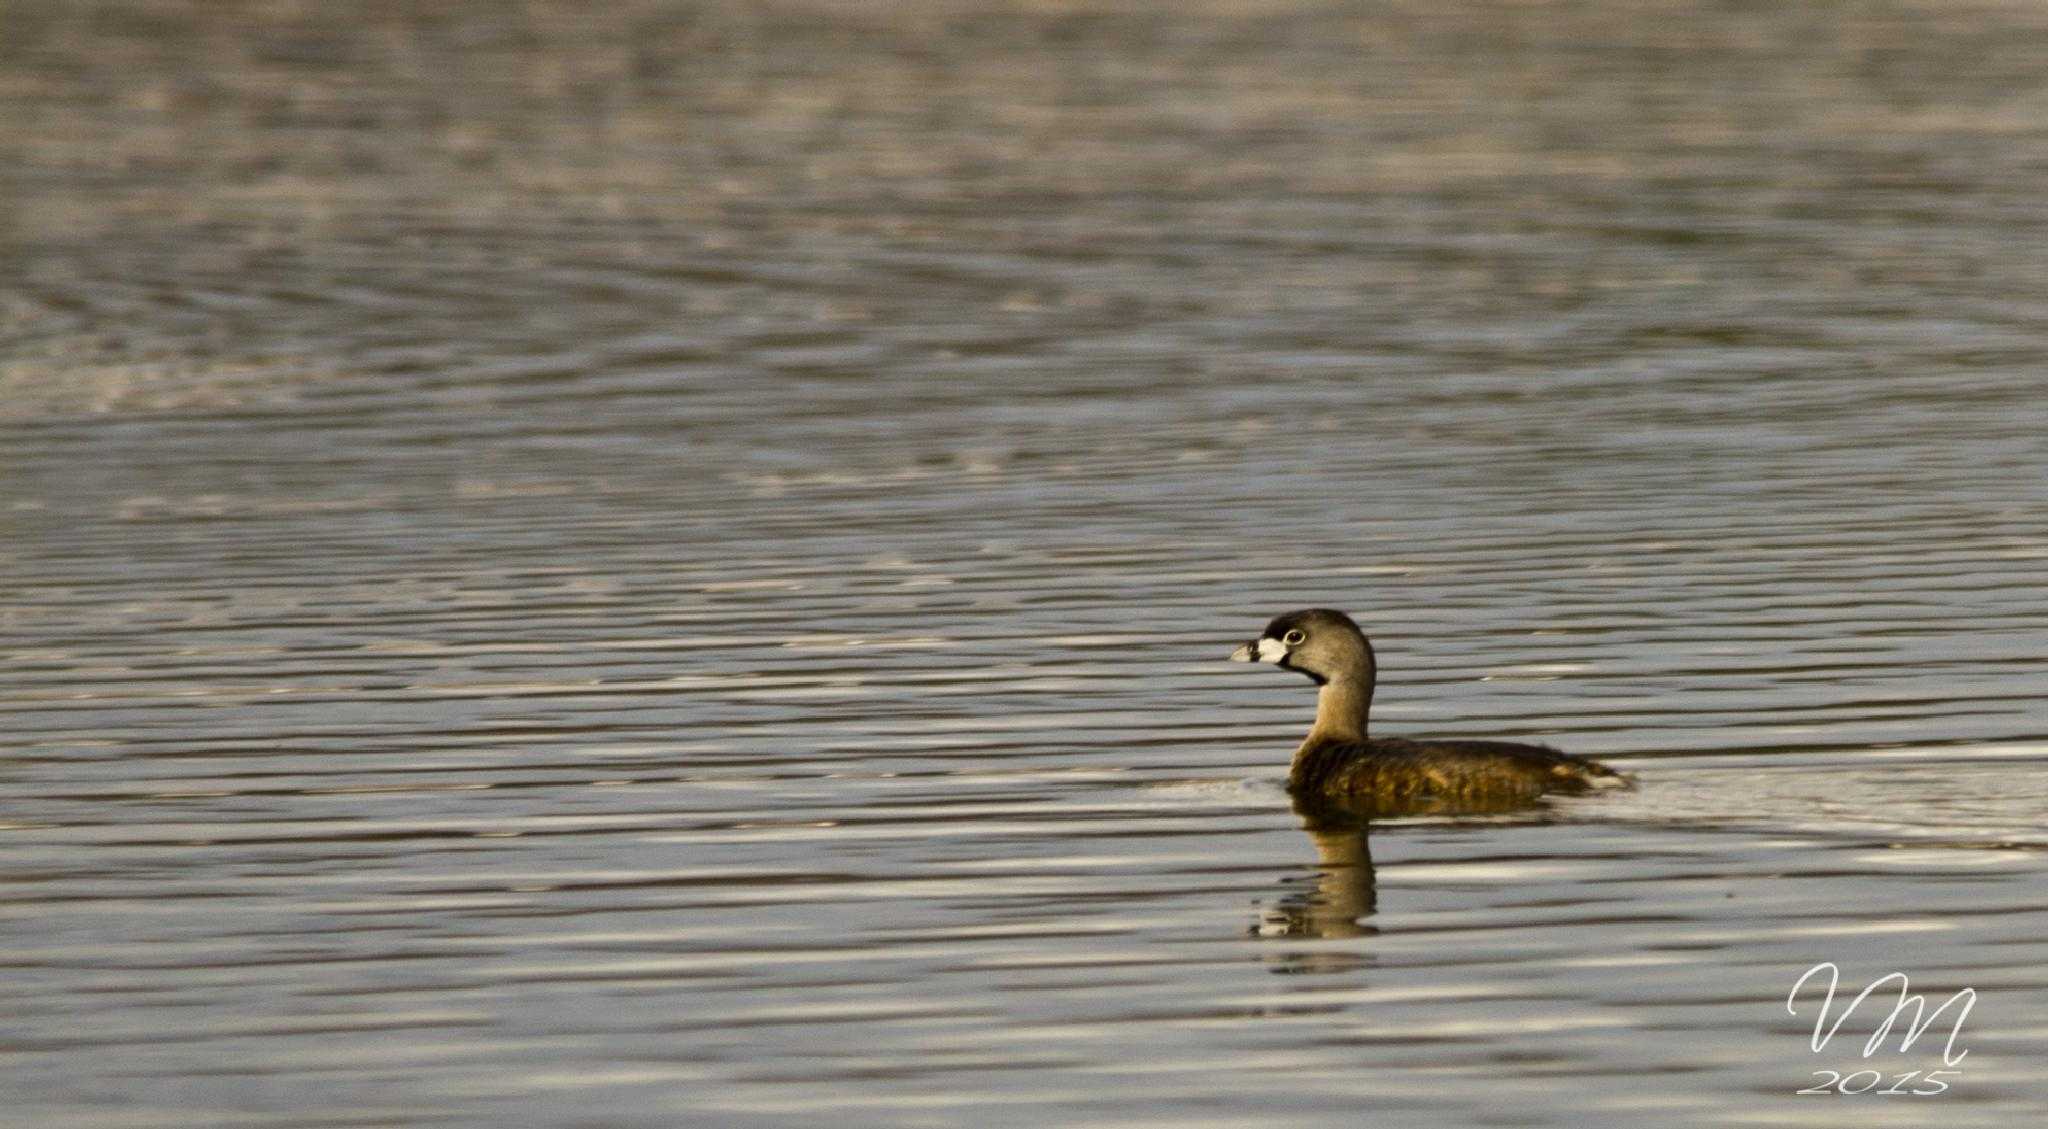 Pied-Billed Grebe on the Lake by Vonda B. Magill